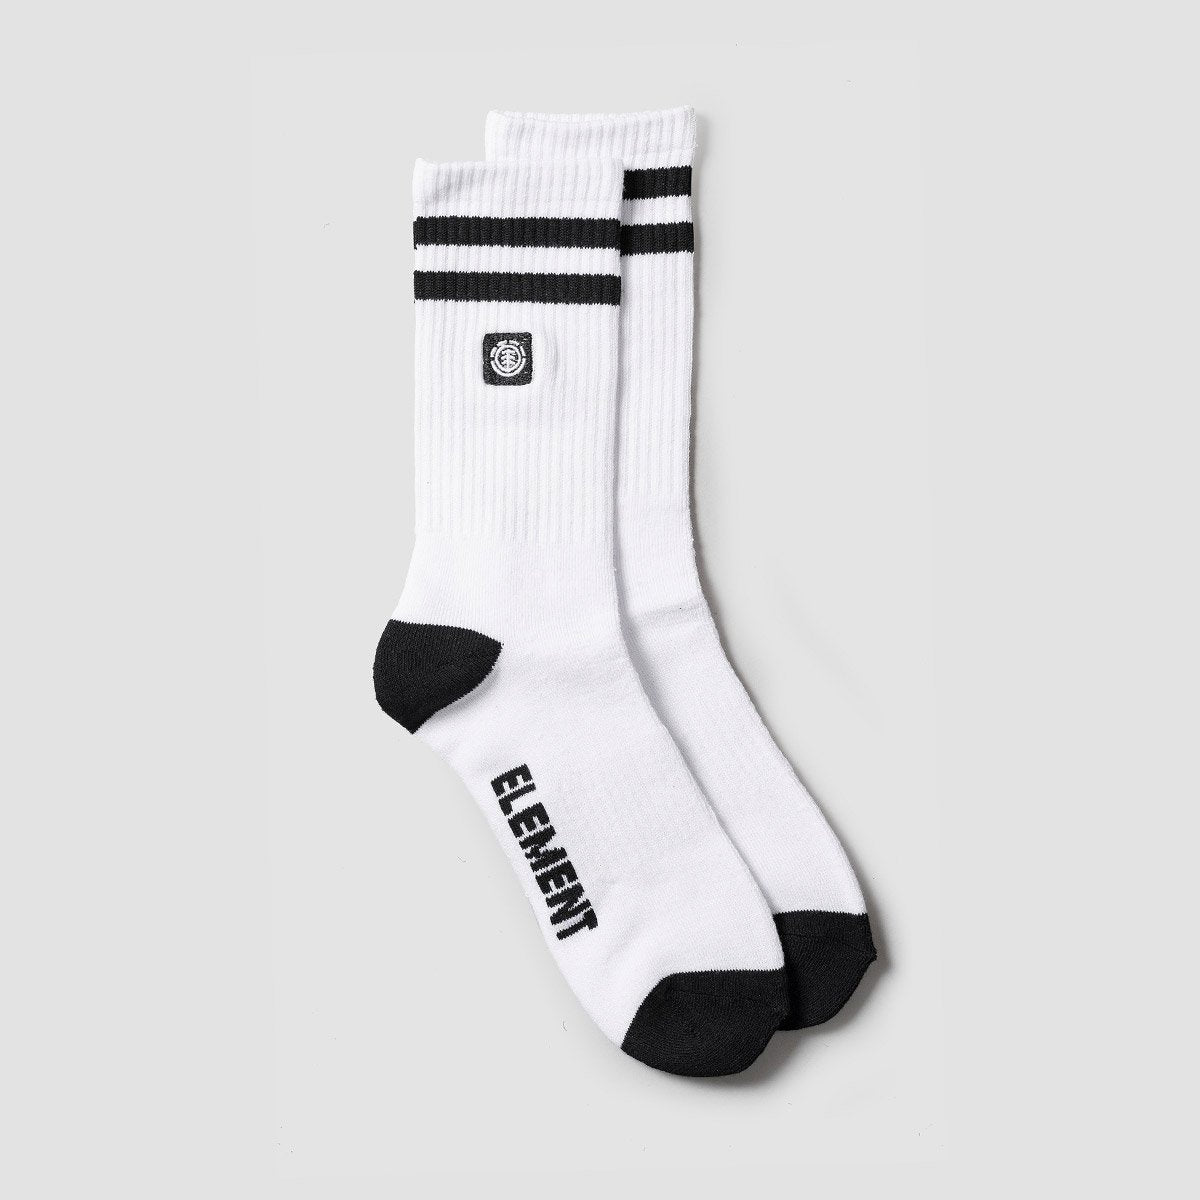 CLEARSIGHT SOCKS OPTIC WHITE